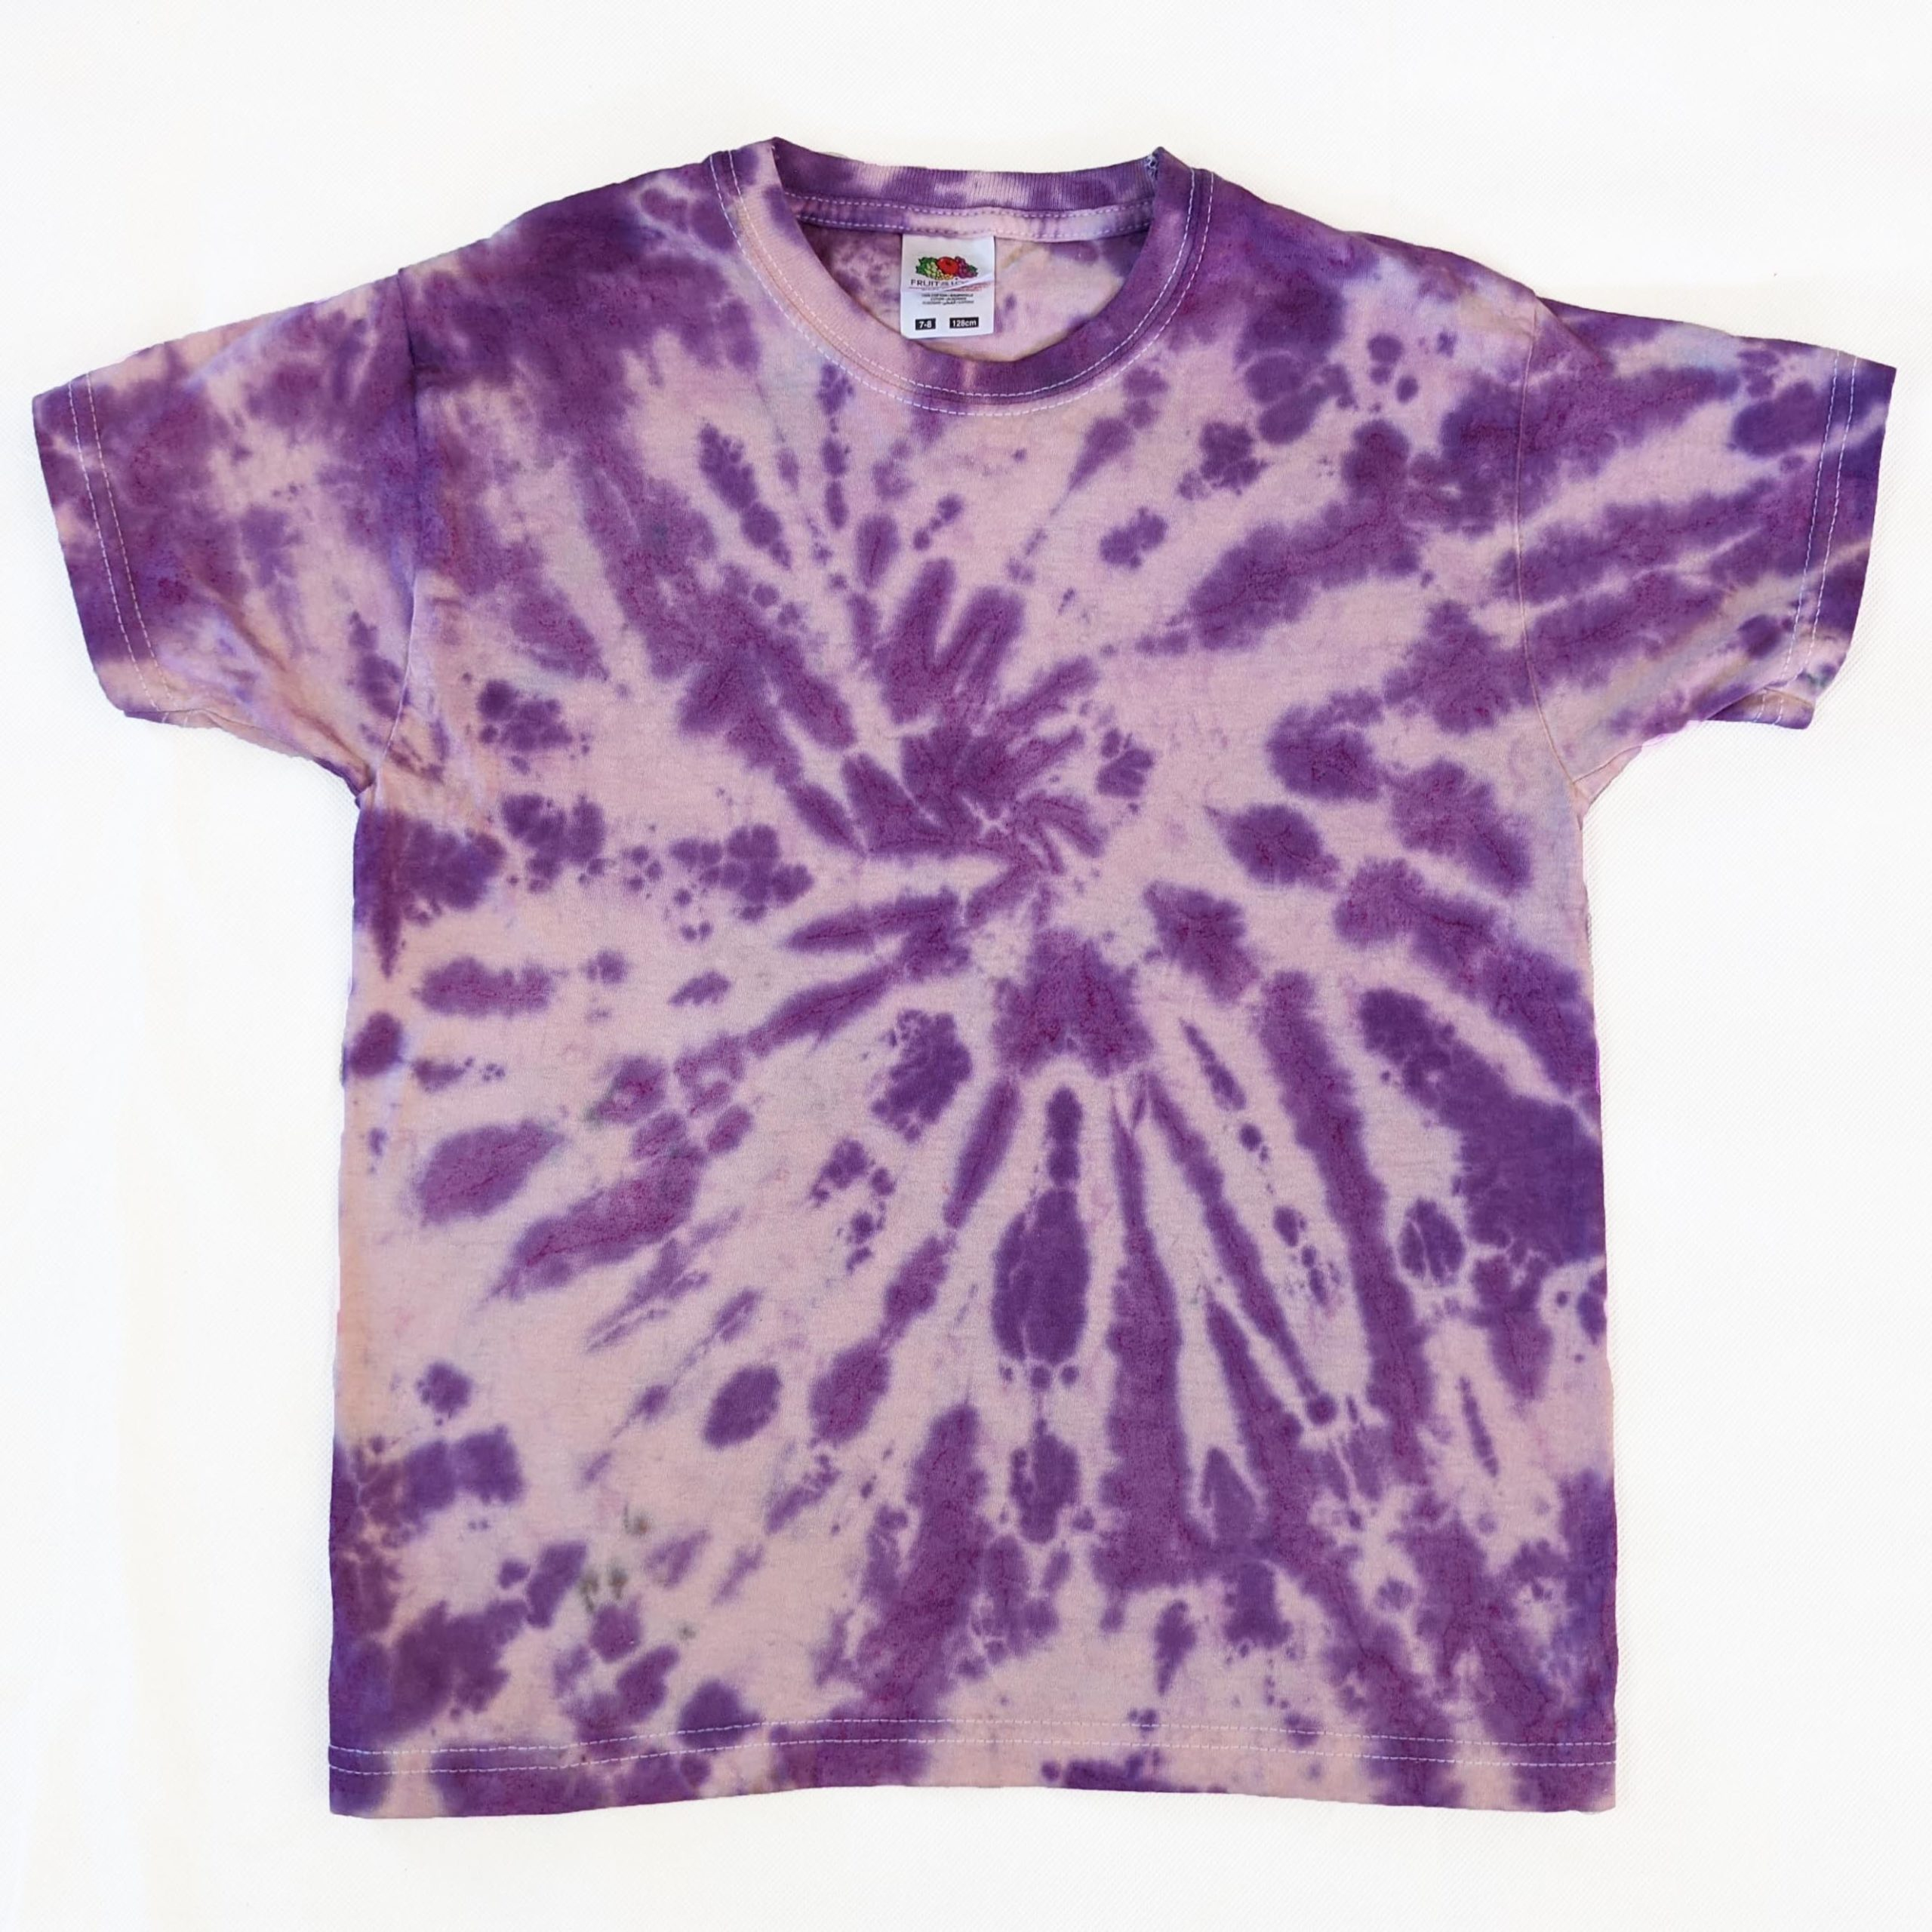 purple tiedye spiral kids tshirt 7-8 years evdesignsuk